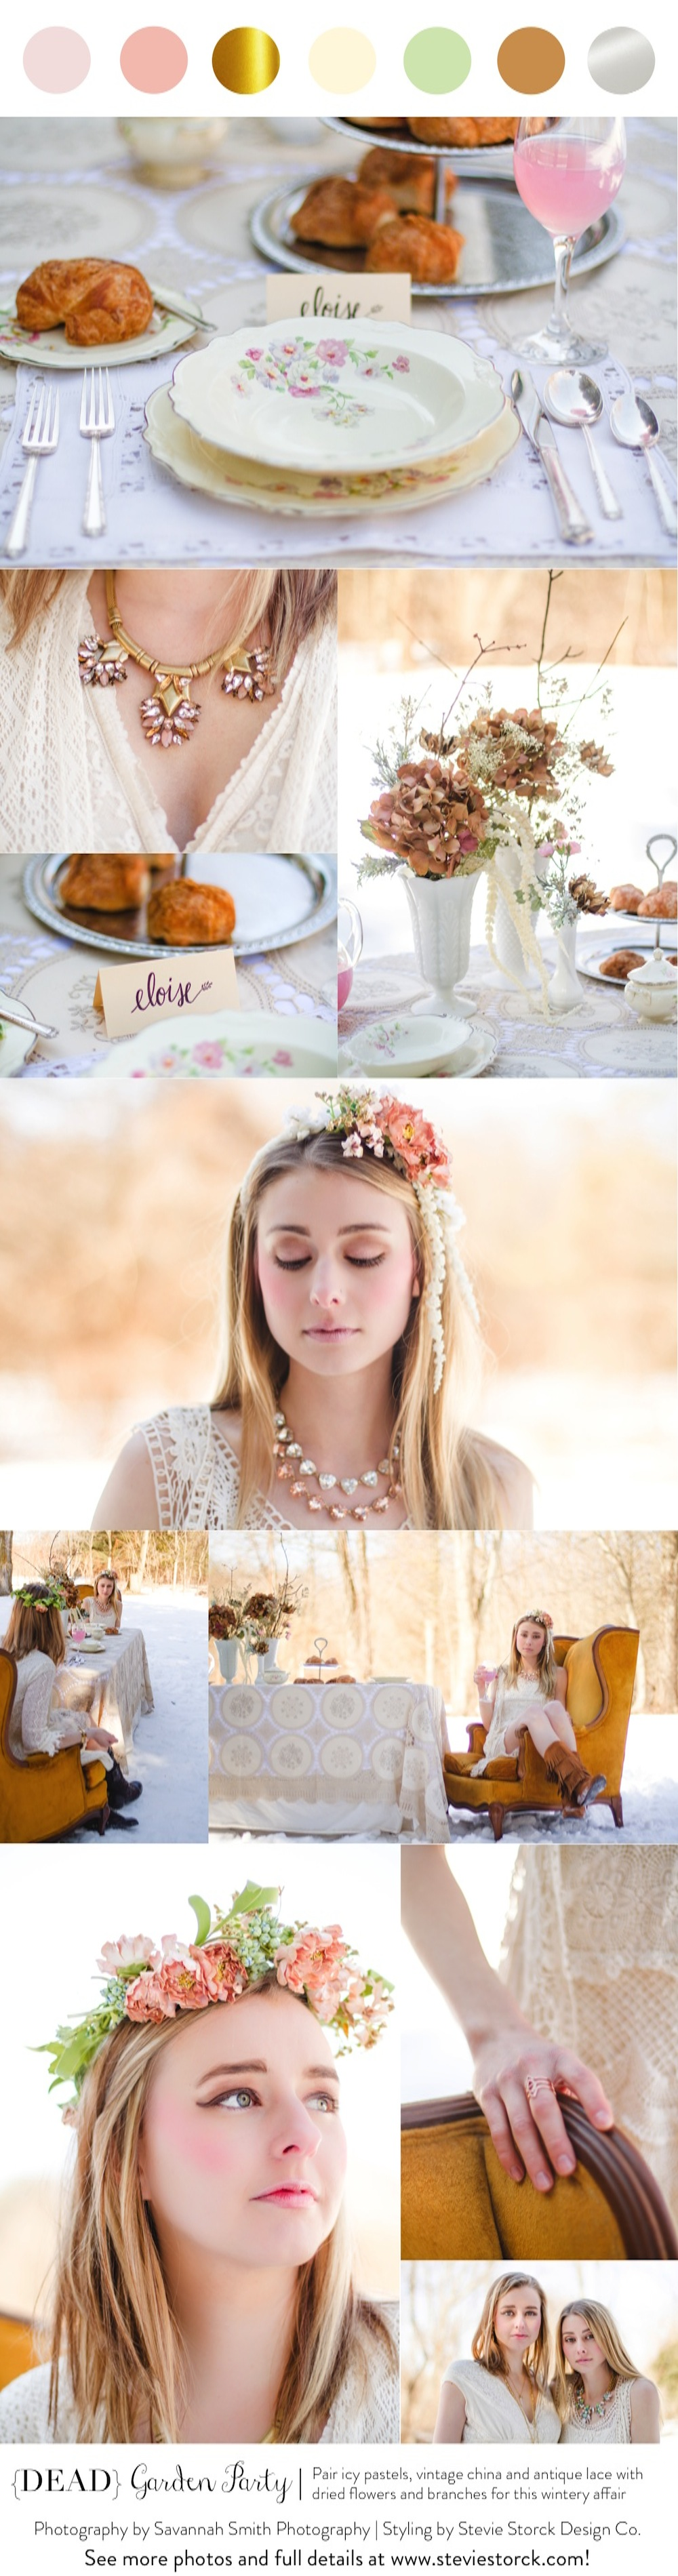 {Dead} Garden Party - Pair icy pastels, vintage china and antique lace with dried flowers and branches for this wintery affair! #blush #gold #green #vintage #lace #winter #gardenparty #tablescape #flowercrown #statementnecklace